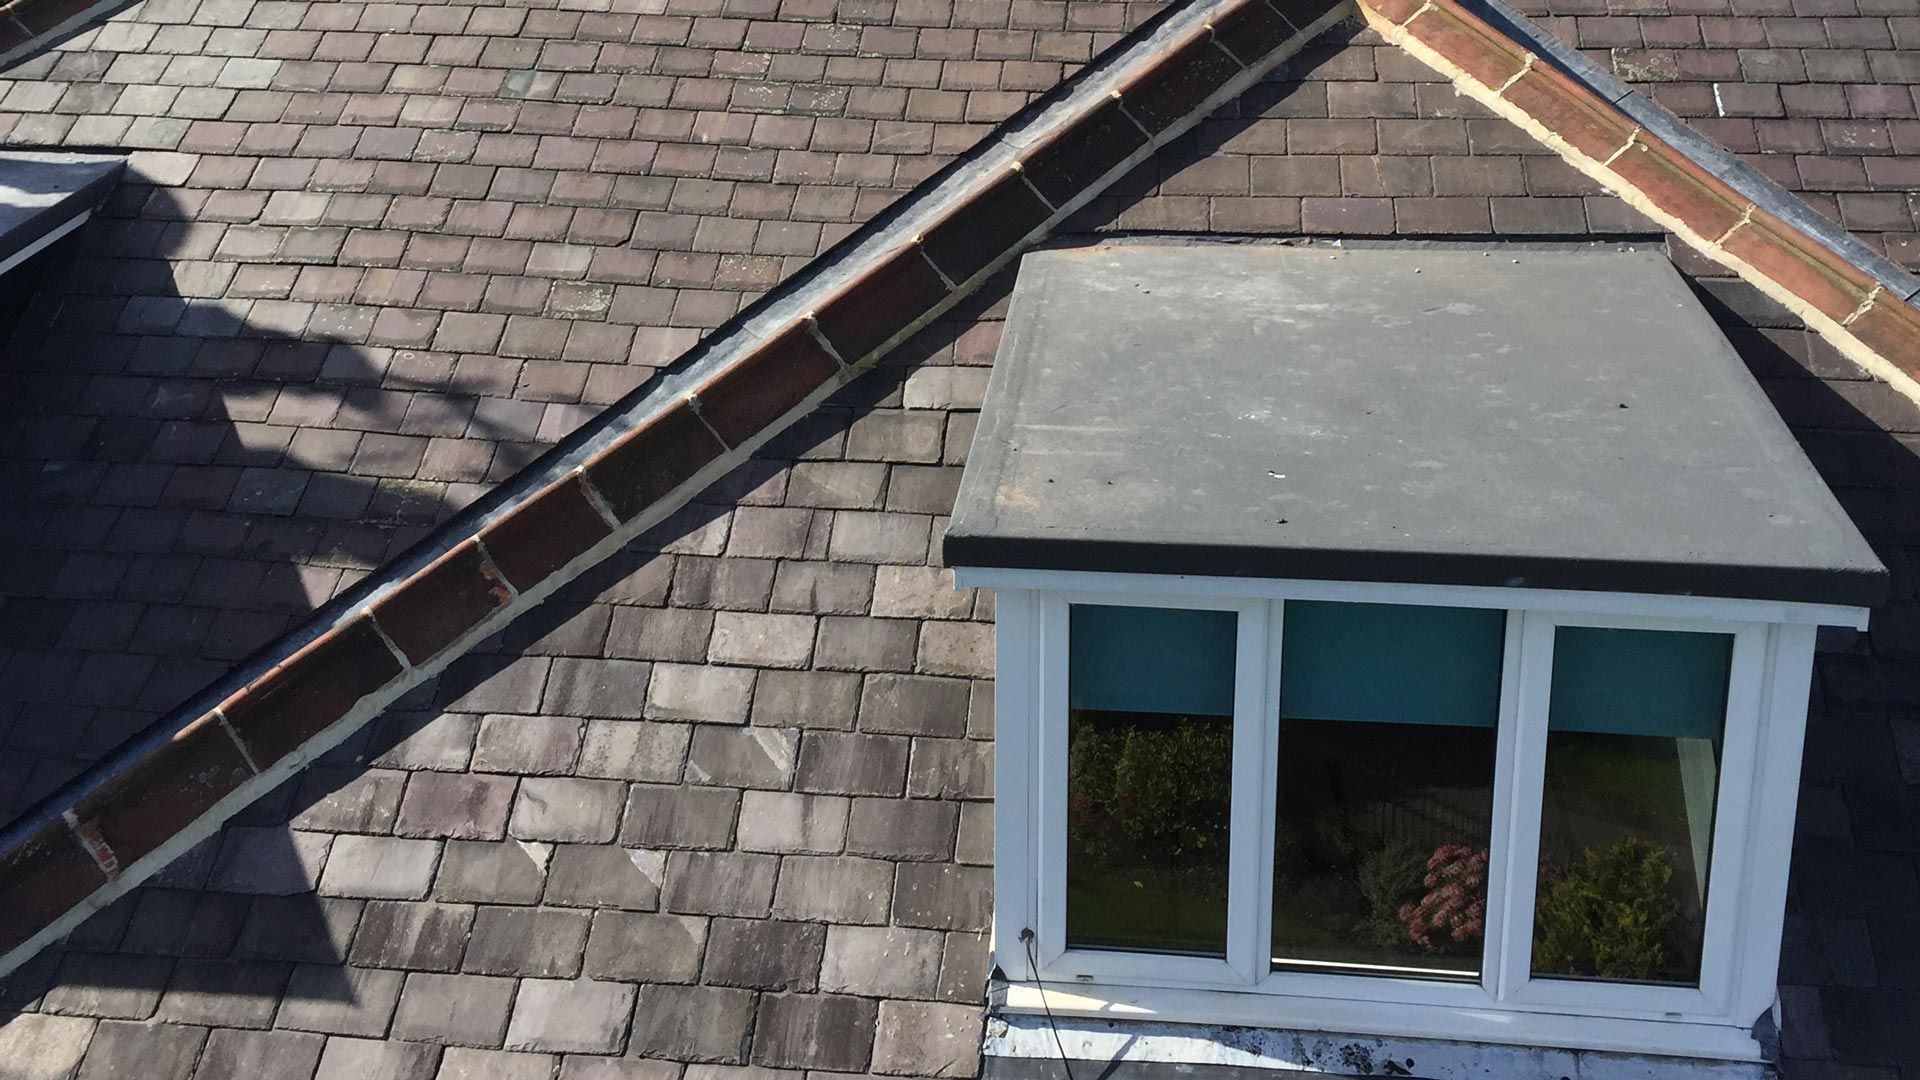 Flat roofing work is able to be carried out by our team